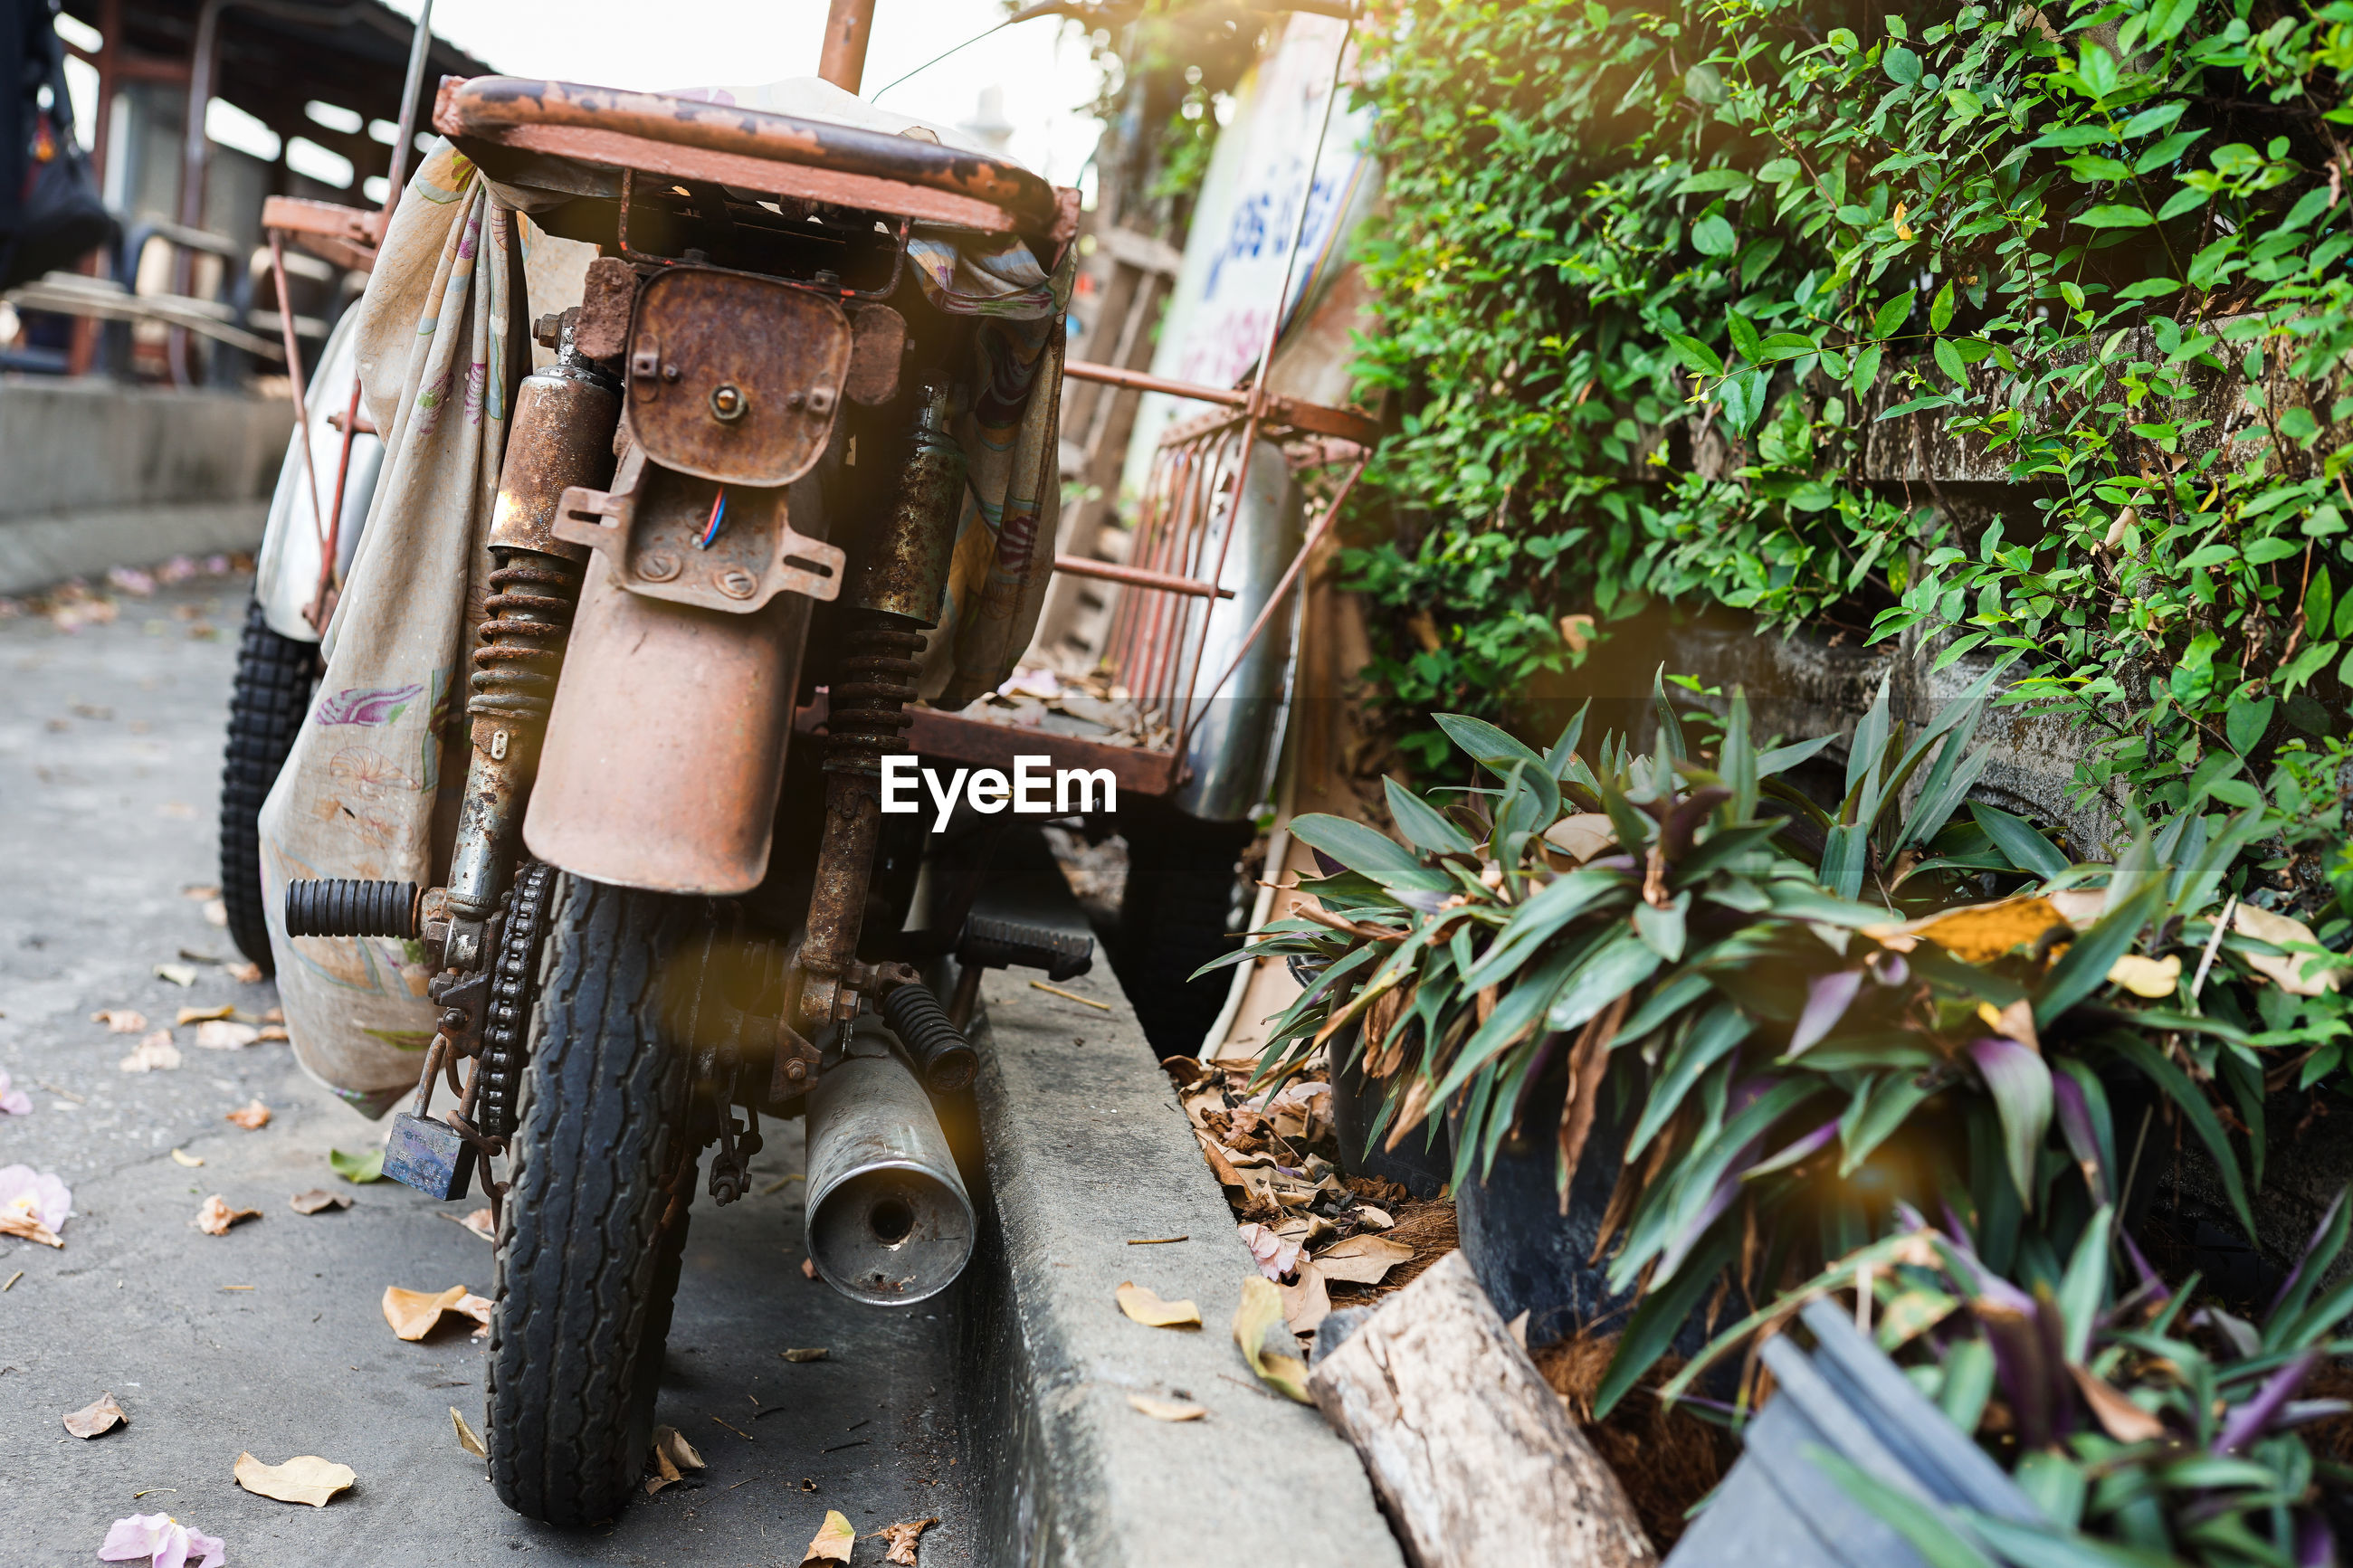 The image of a rusty old motorcycle parked on the side of the road.